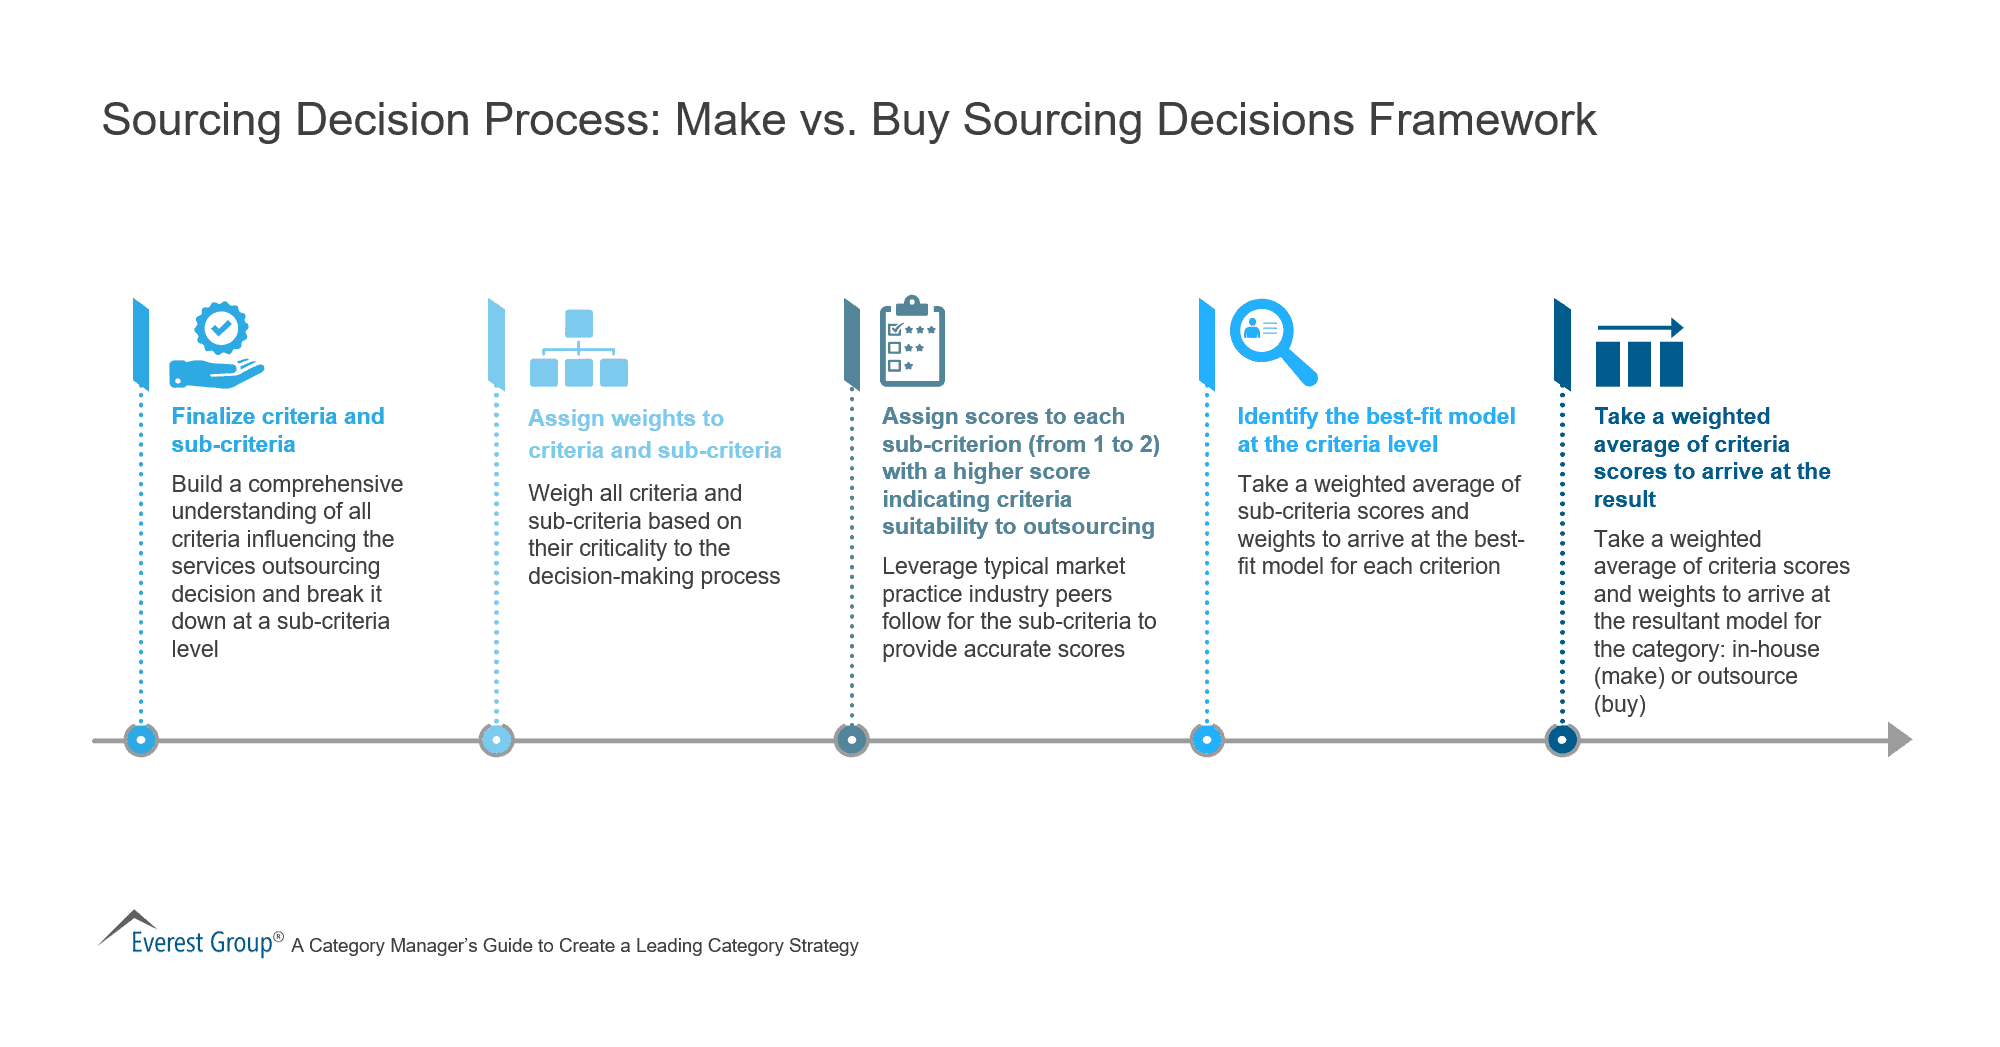 Sourcing Decision Process - Make vs. Buy Sourcing Decisions Framework